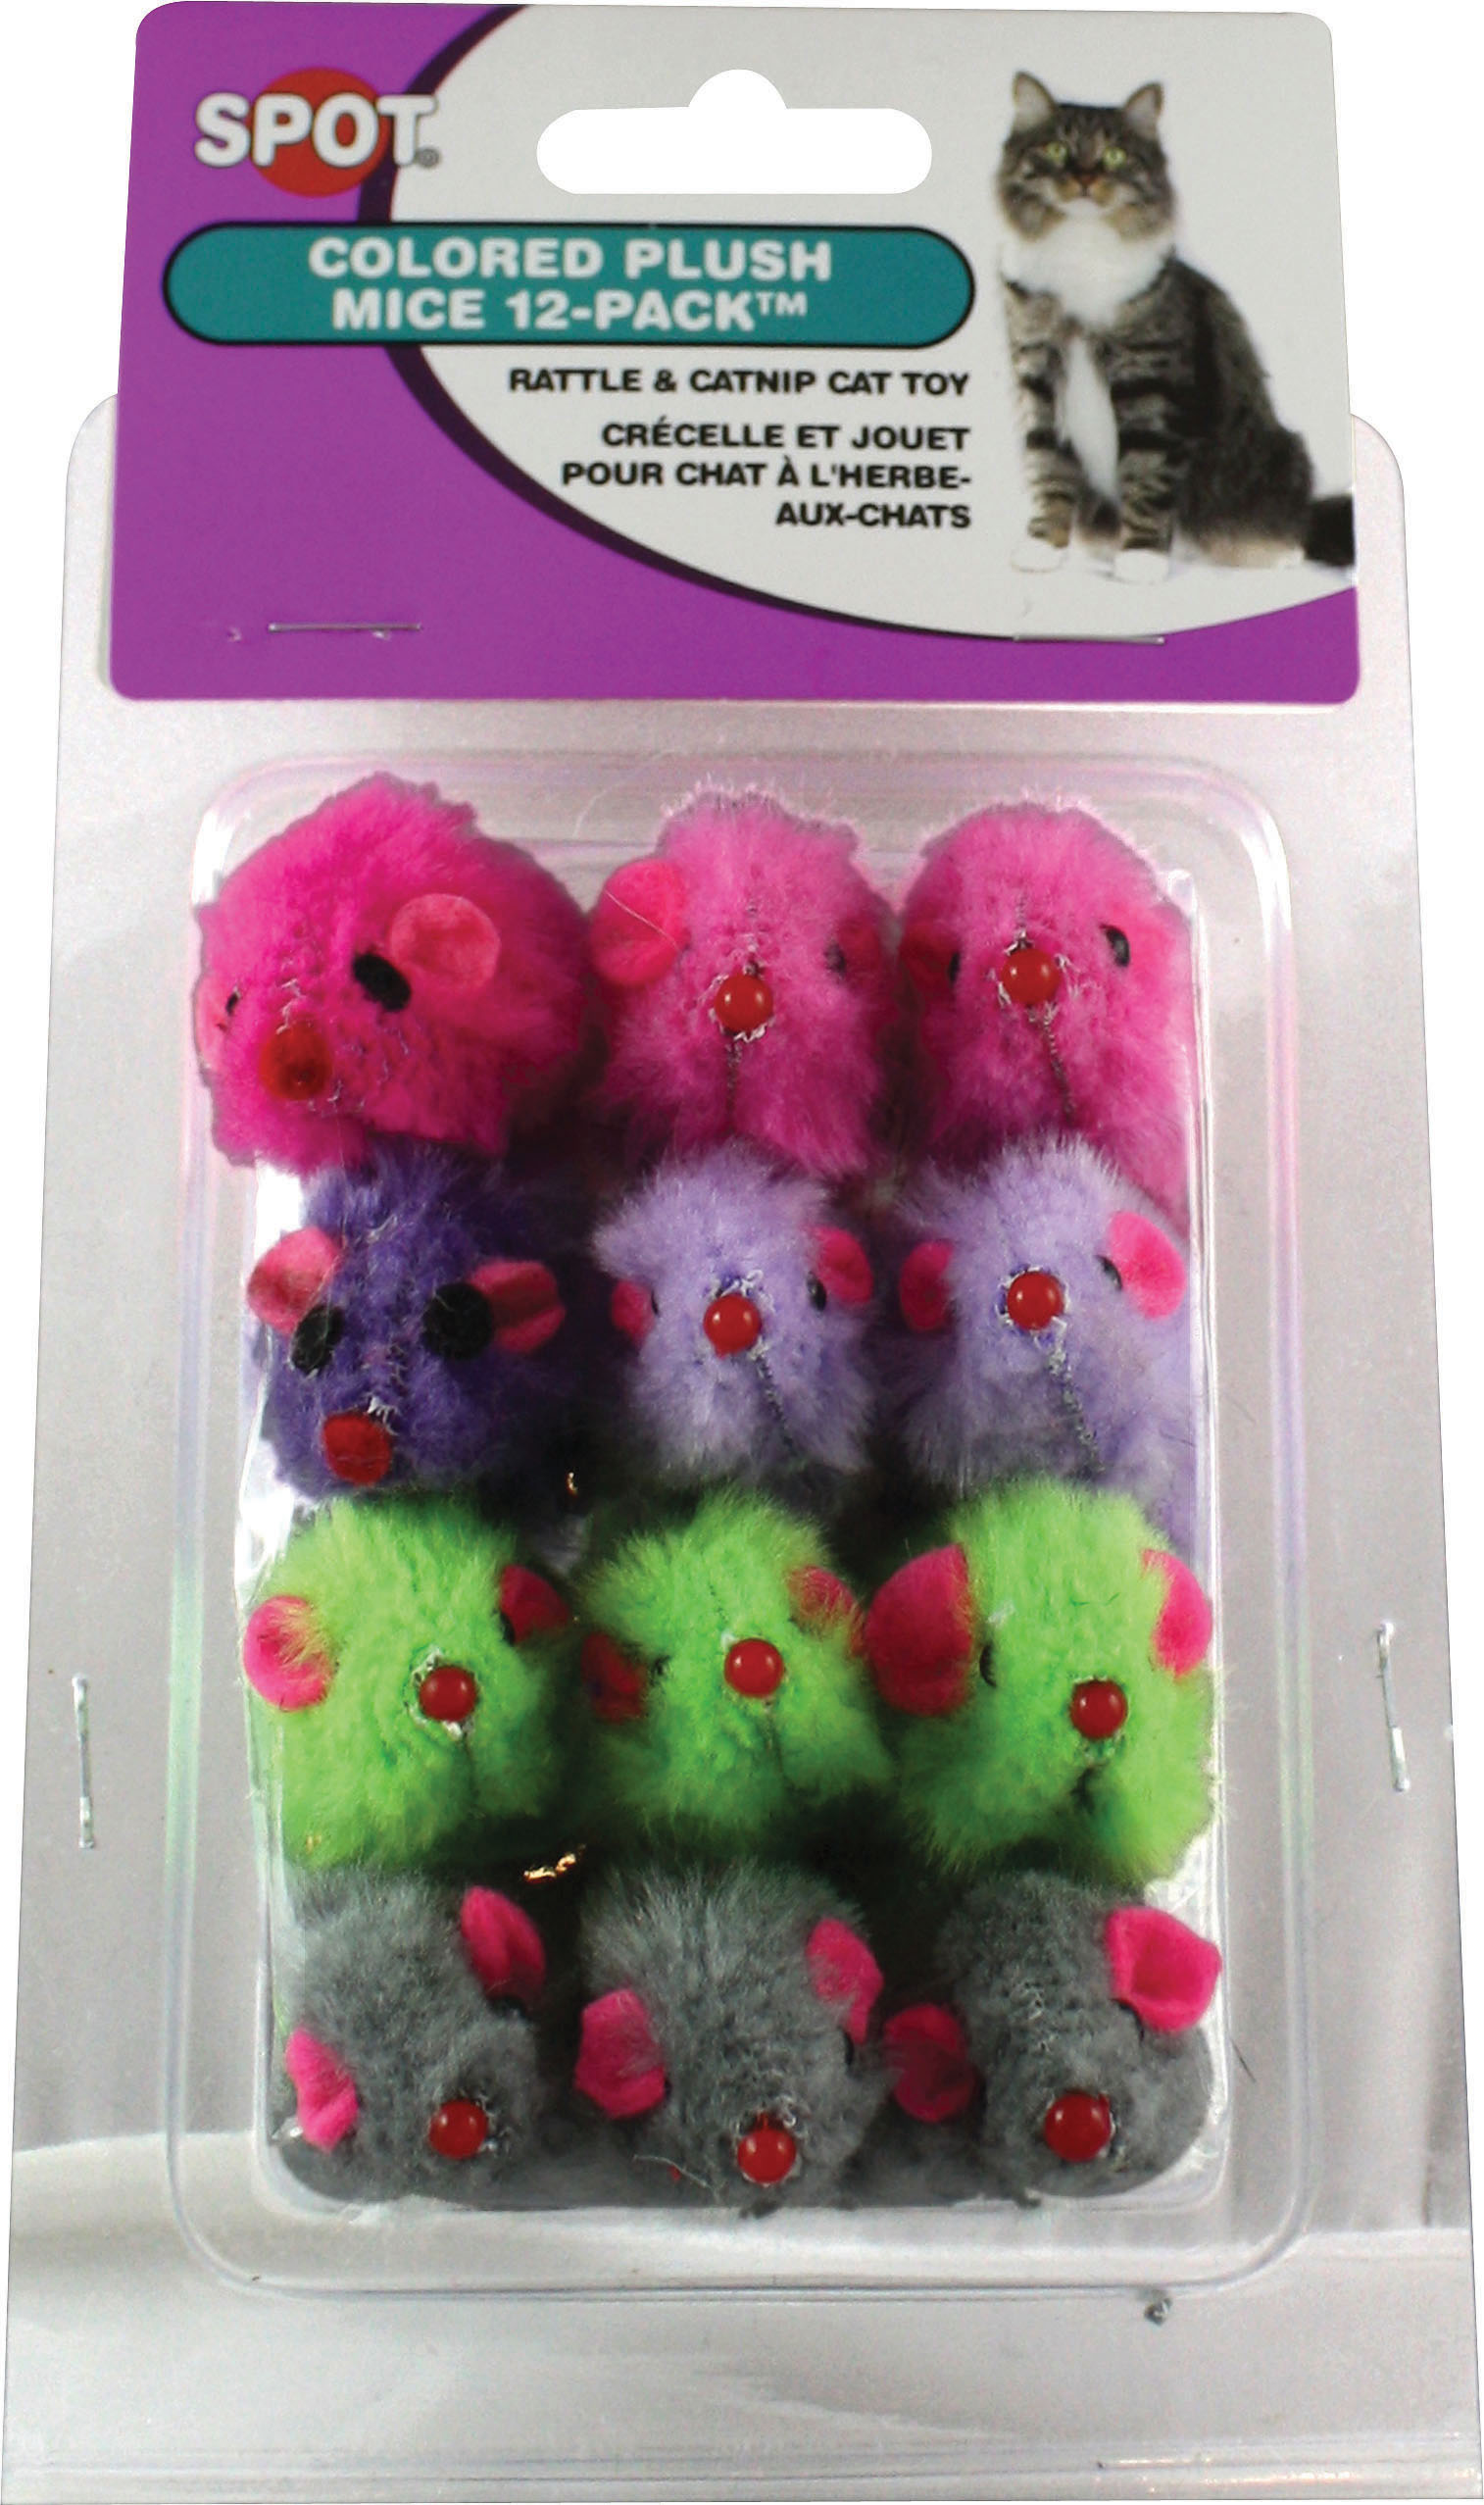 "Colored Plush Mice with Catnip & Rattle 4.5"" 12pk, Assorted by Ethical Pets"